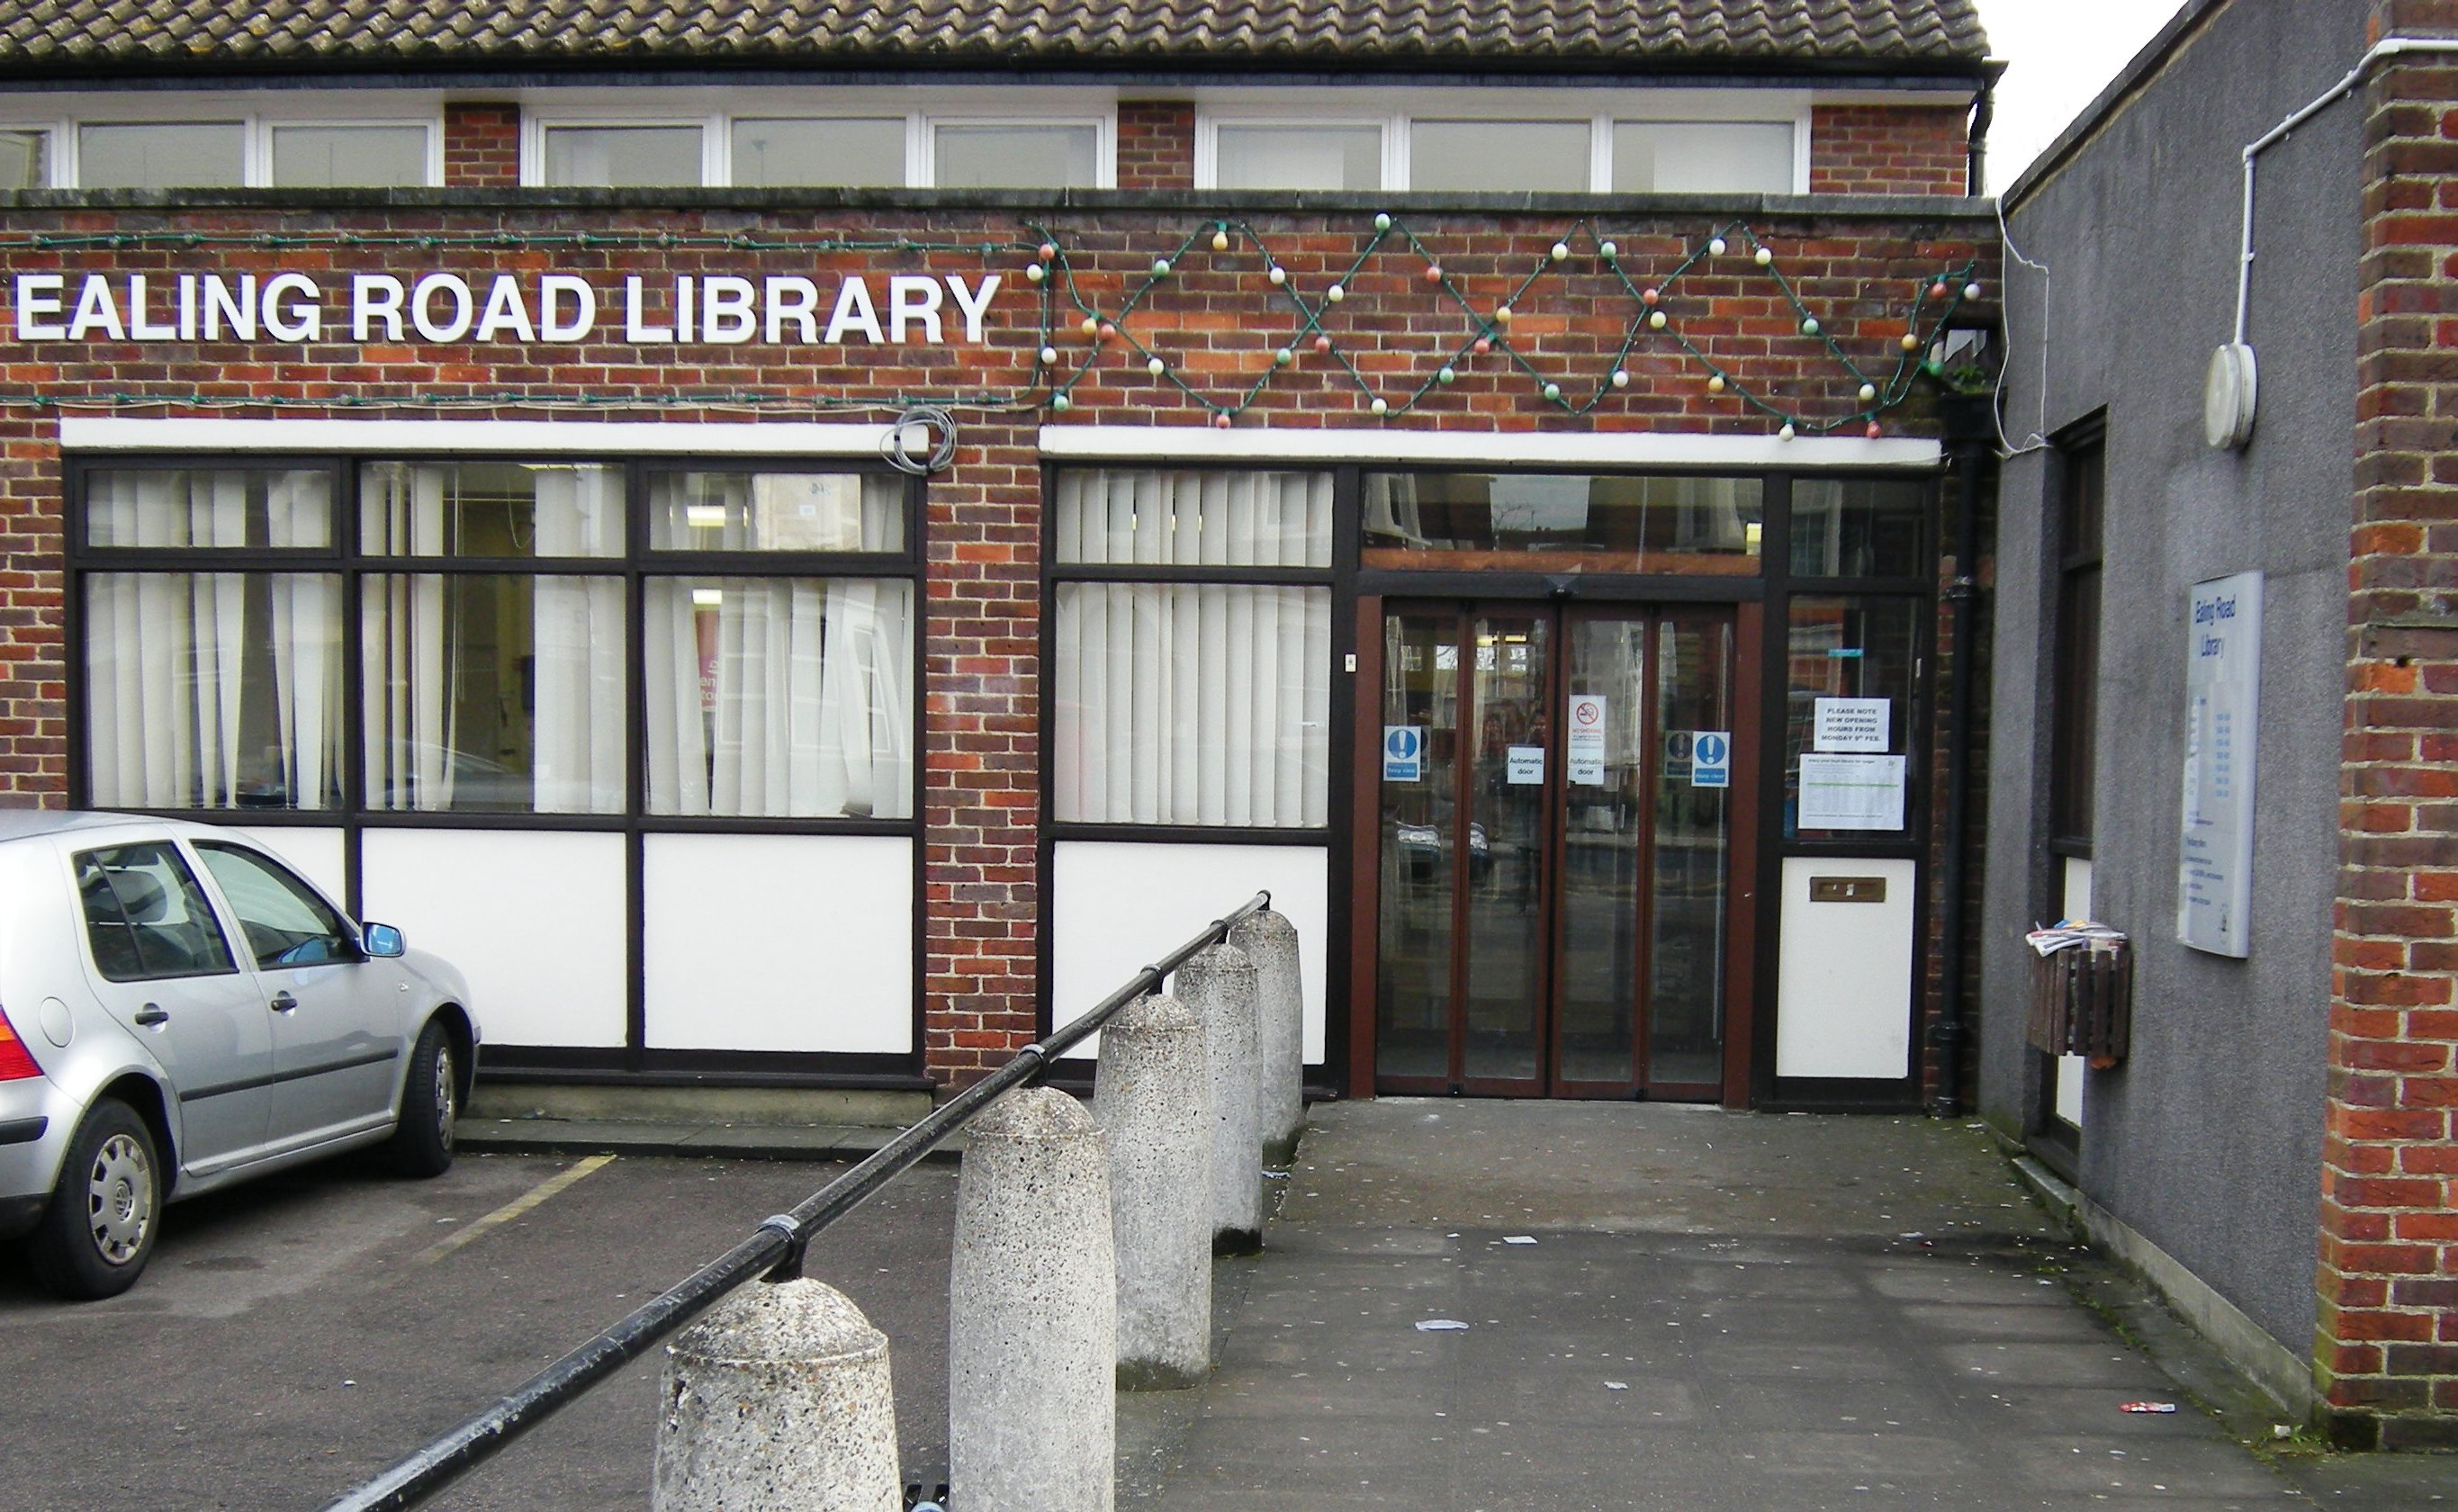 Ealing Road Library